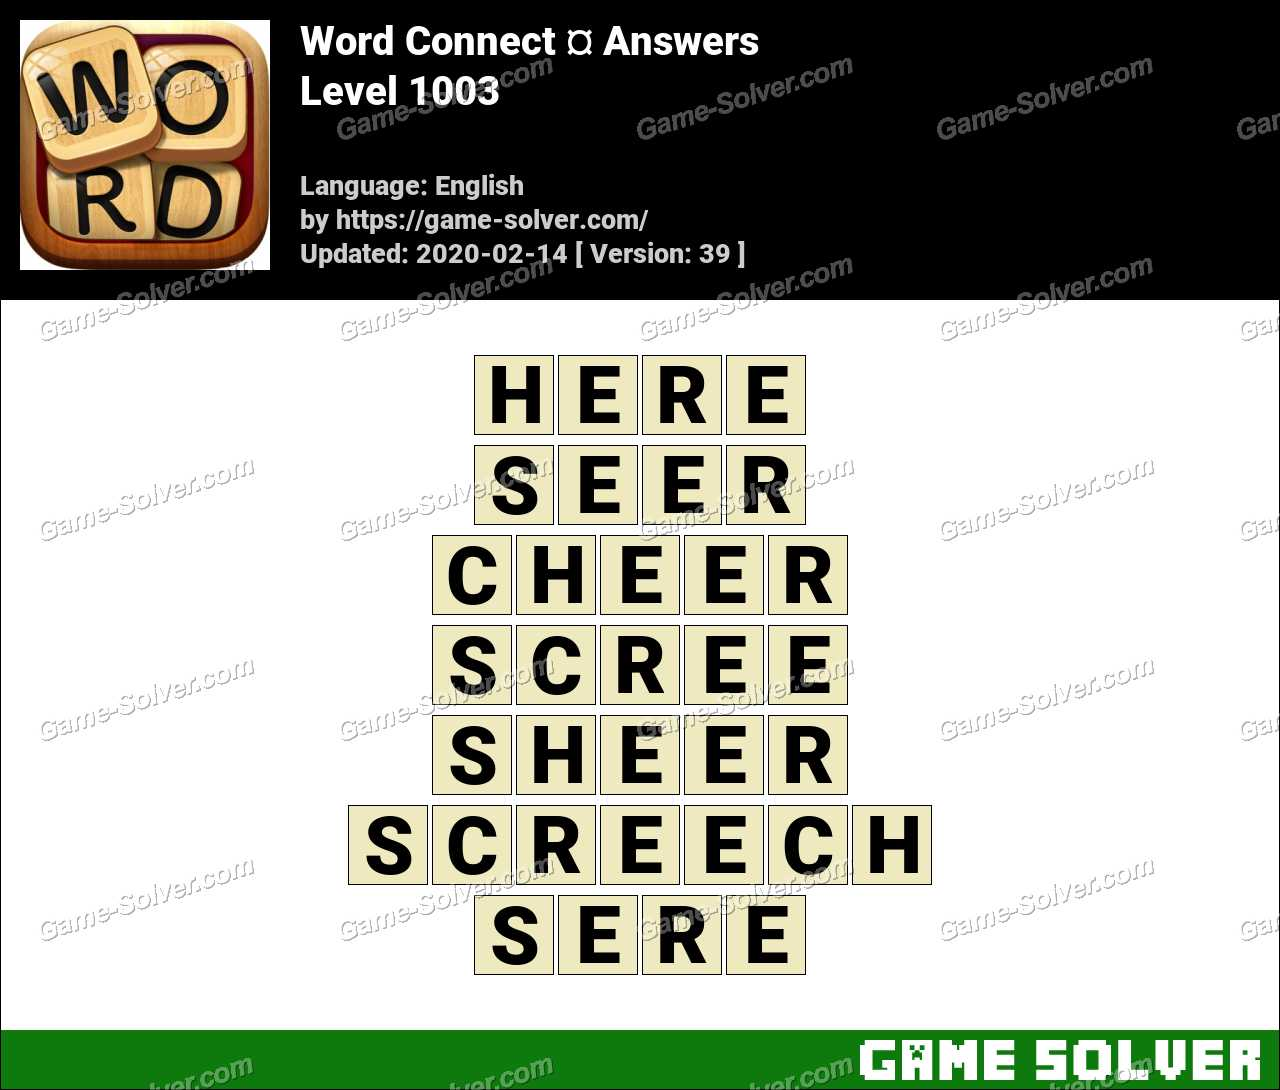 Word Connect Level 1003 Answers